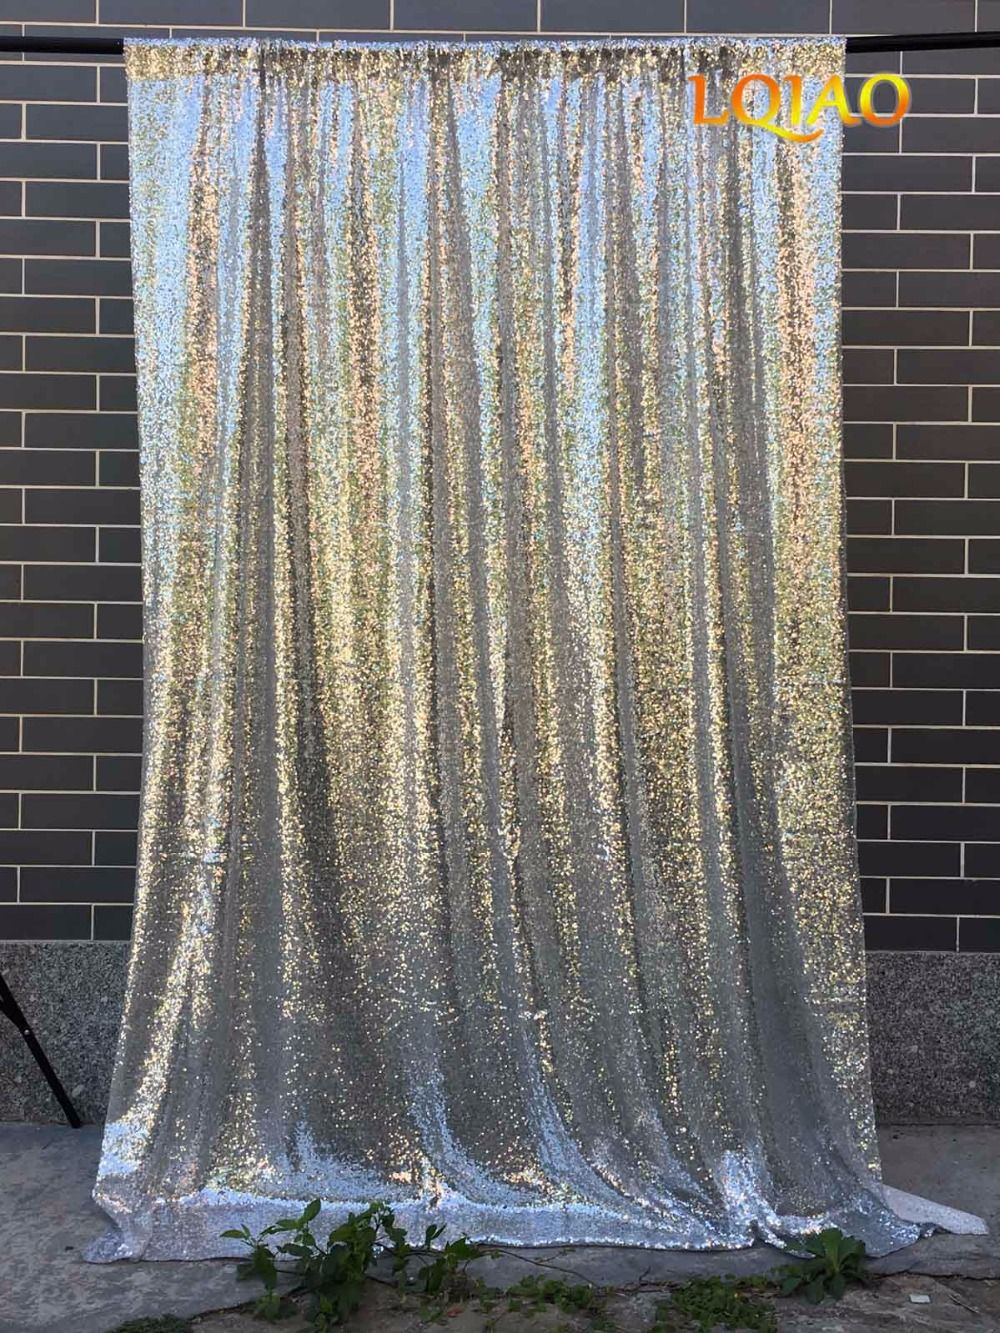 4ftx8ft/4ftx10ft Glitter Silver/Gold Sequin Backdrop Wedding Photo Booth Backdrop for Party Decoration Photography Background